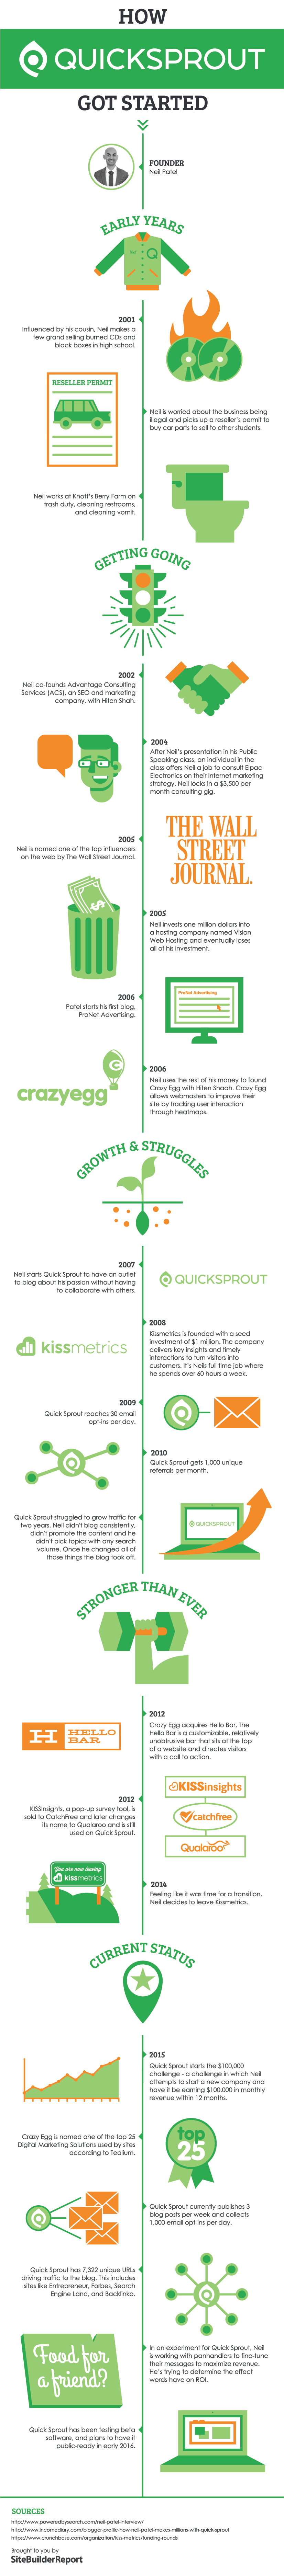 How QuickSprout Got Started